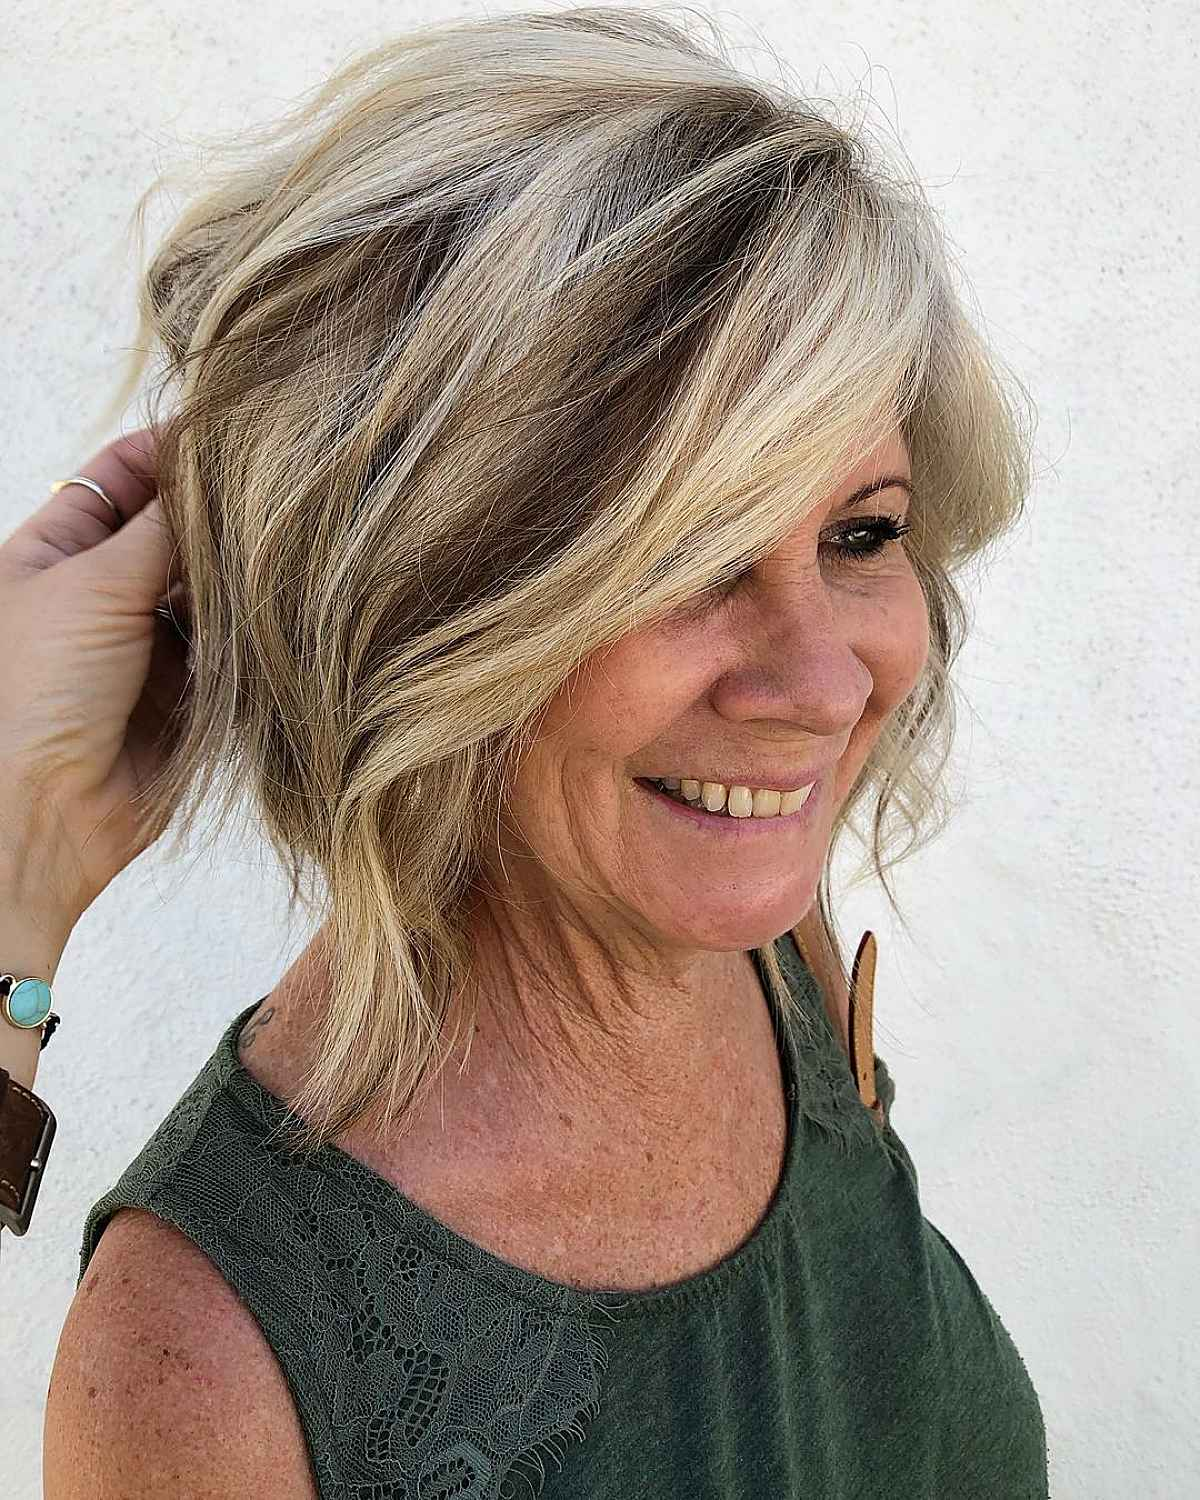 Top 10 Fall Hair Colors for Older Women in 2021